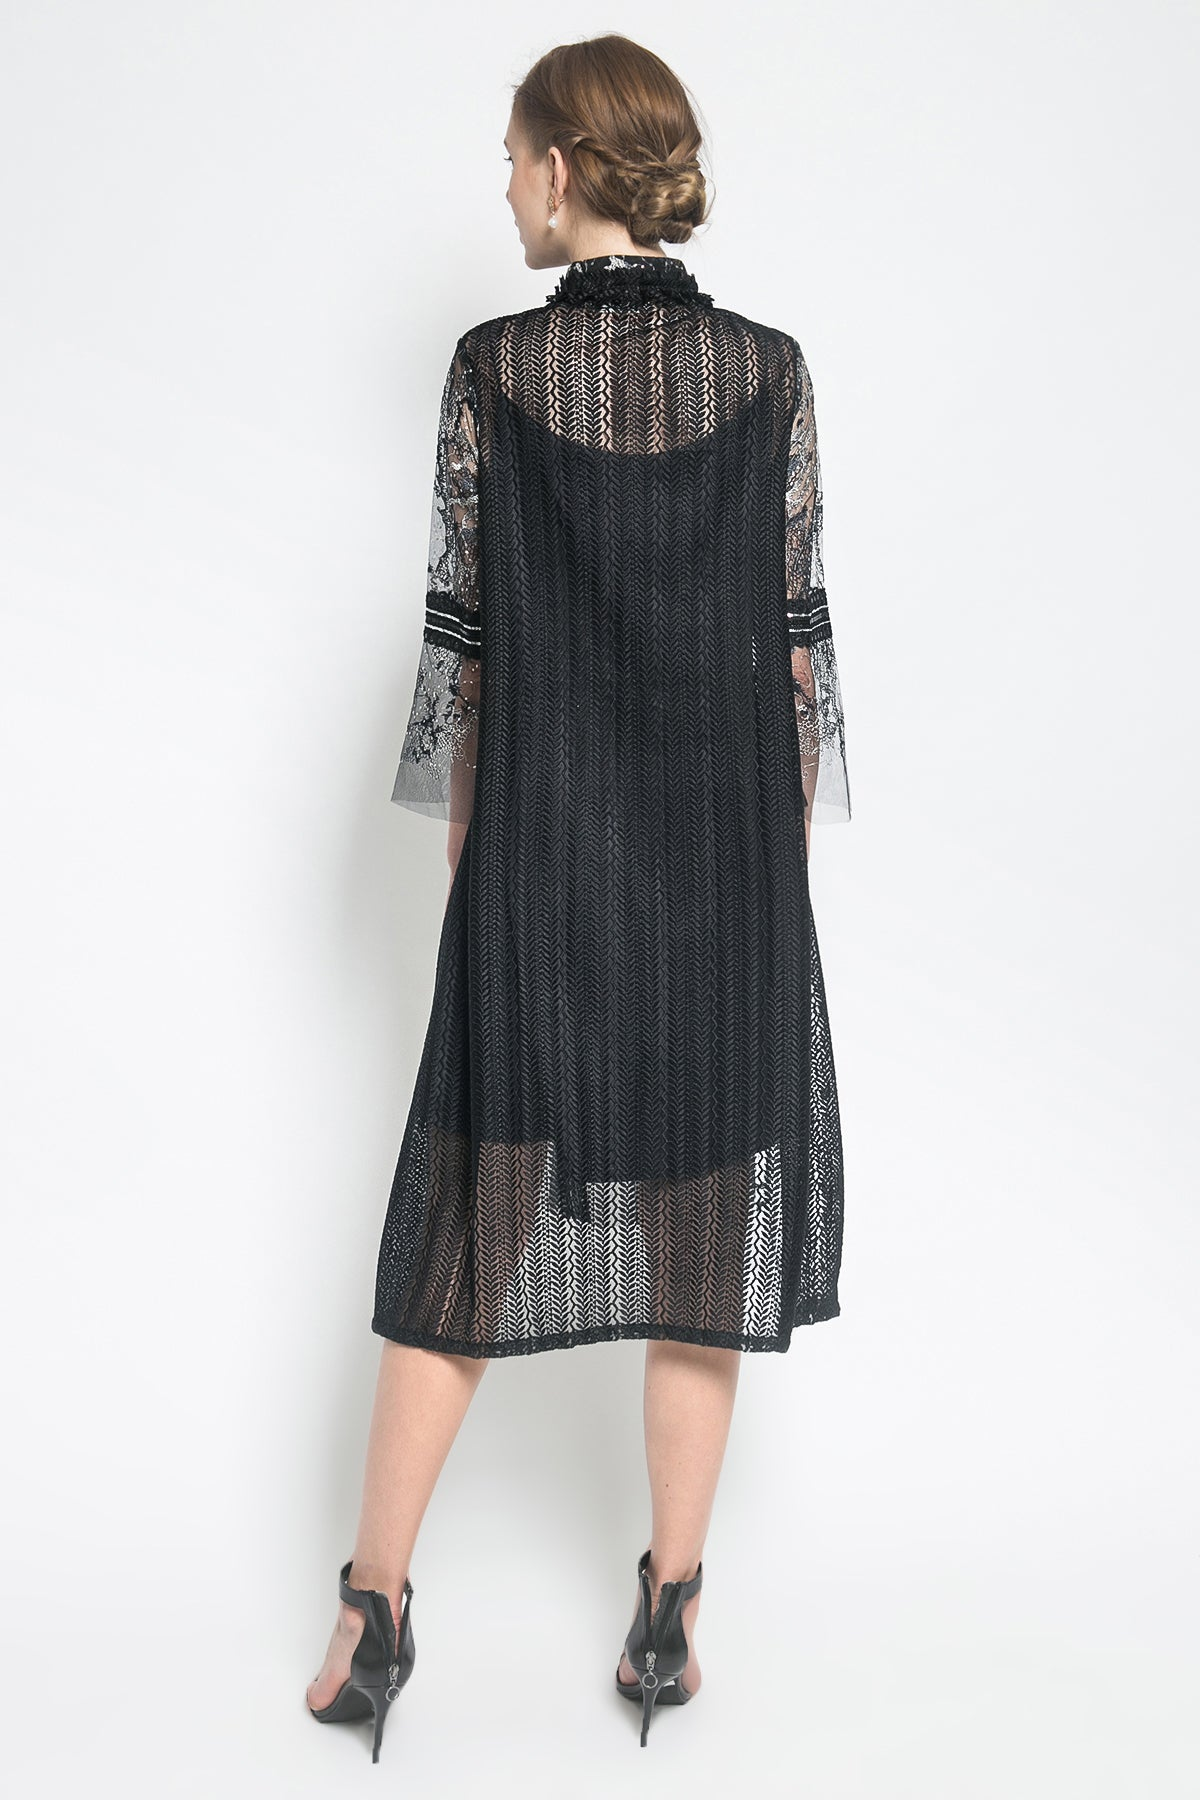 Sabcath Avery Dress in Black